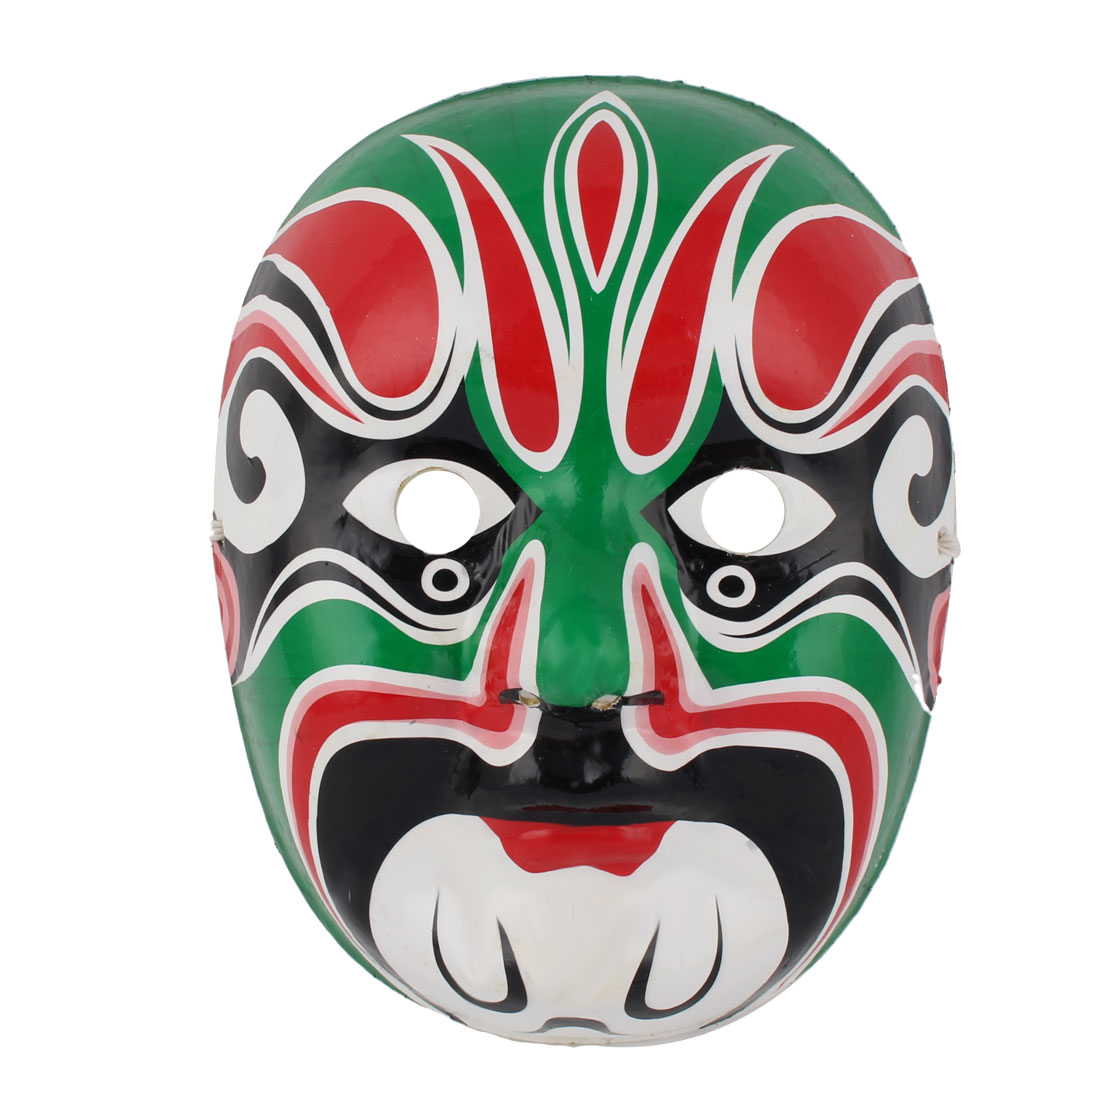 Karneval Cosplay Parties Unisex Decoration Chinese Beijing Opera Facial Mask